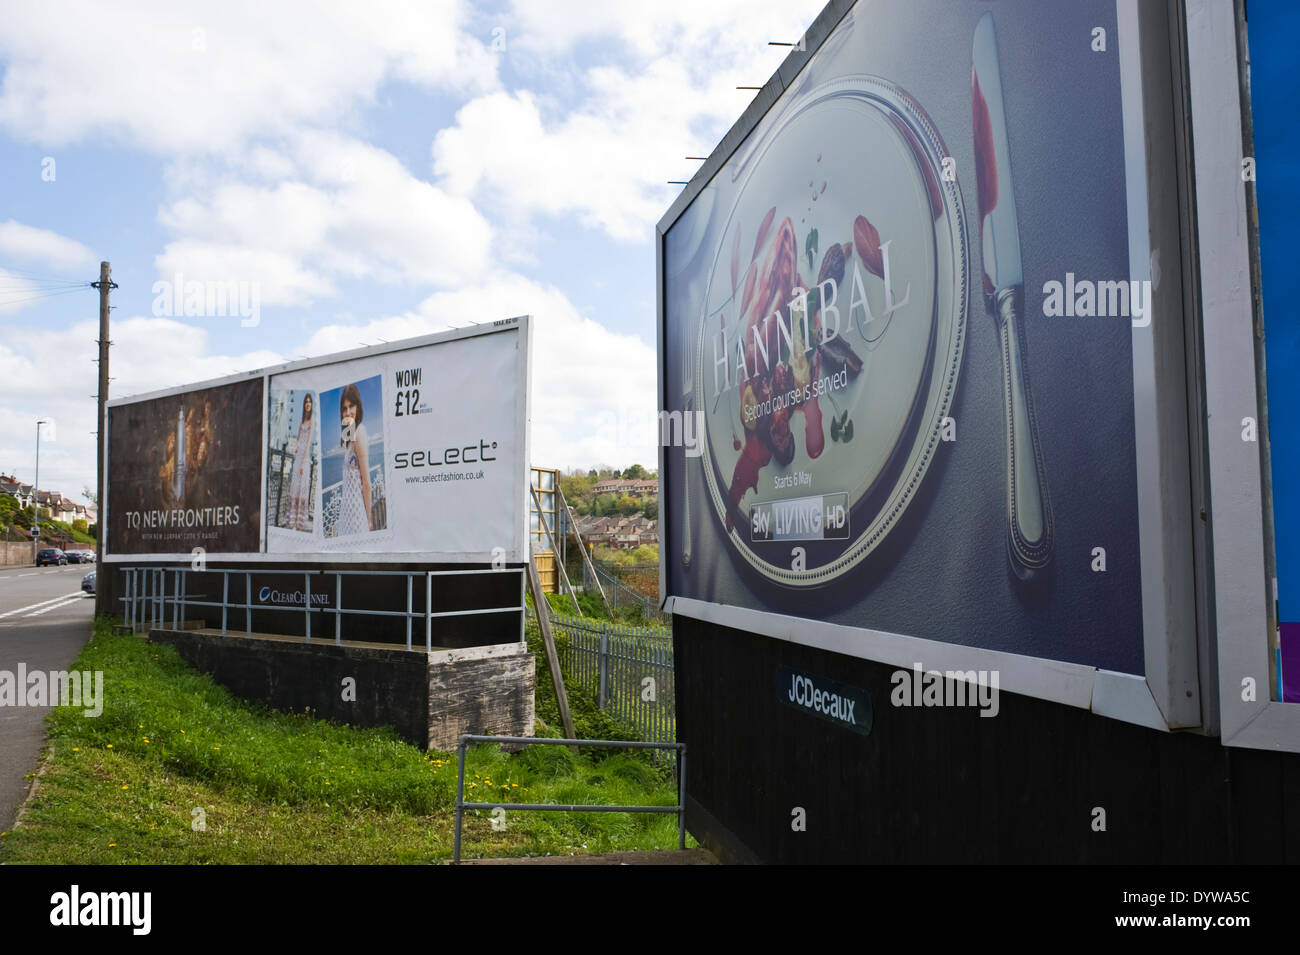 JCDecaux & ClearChannel advertising billboards on roadside site in Newport South Wales UK - Stock Image